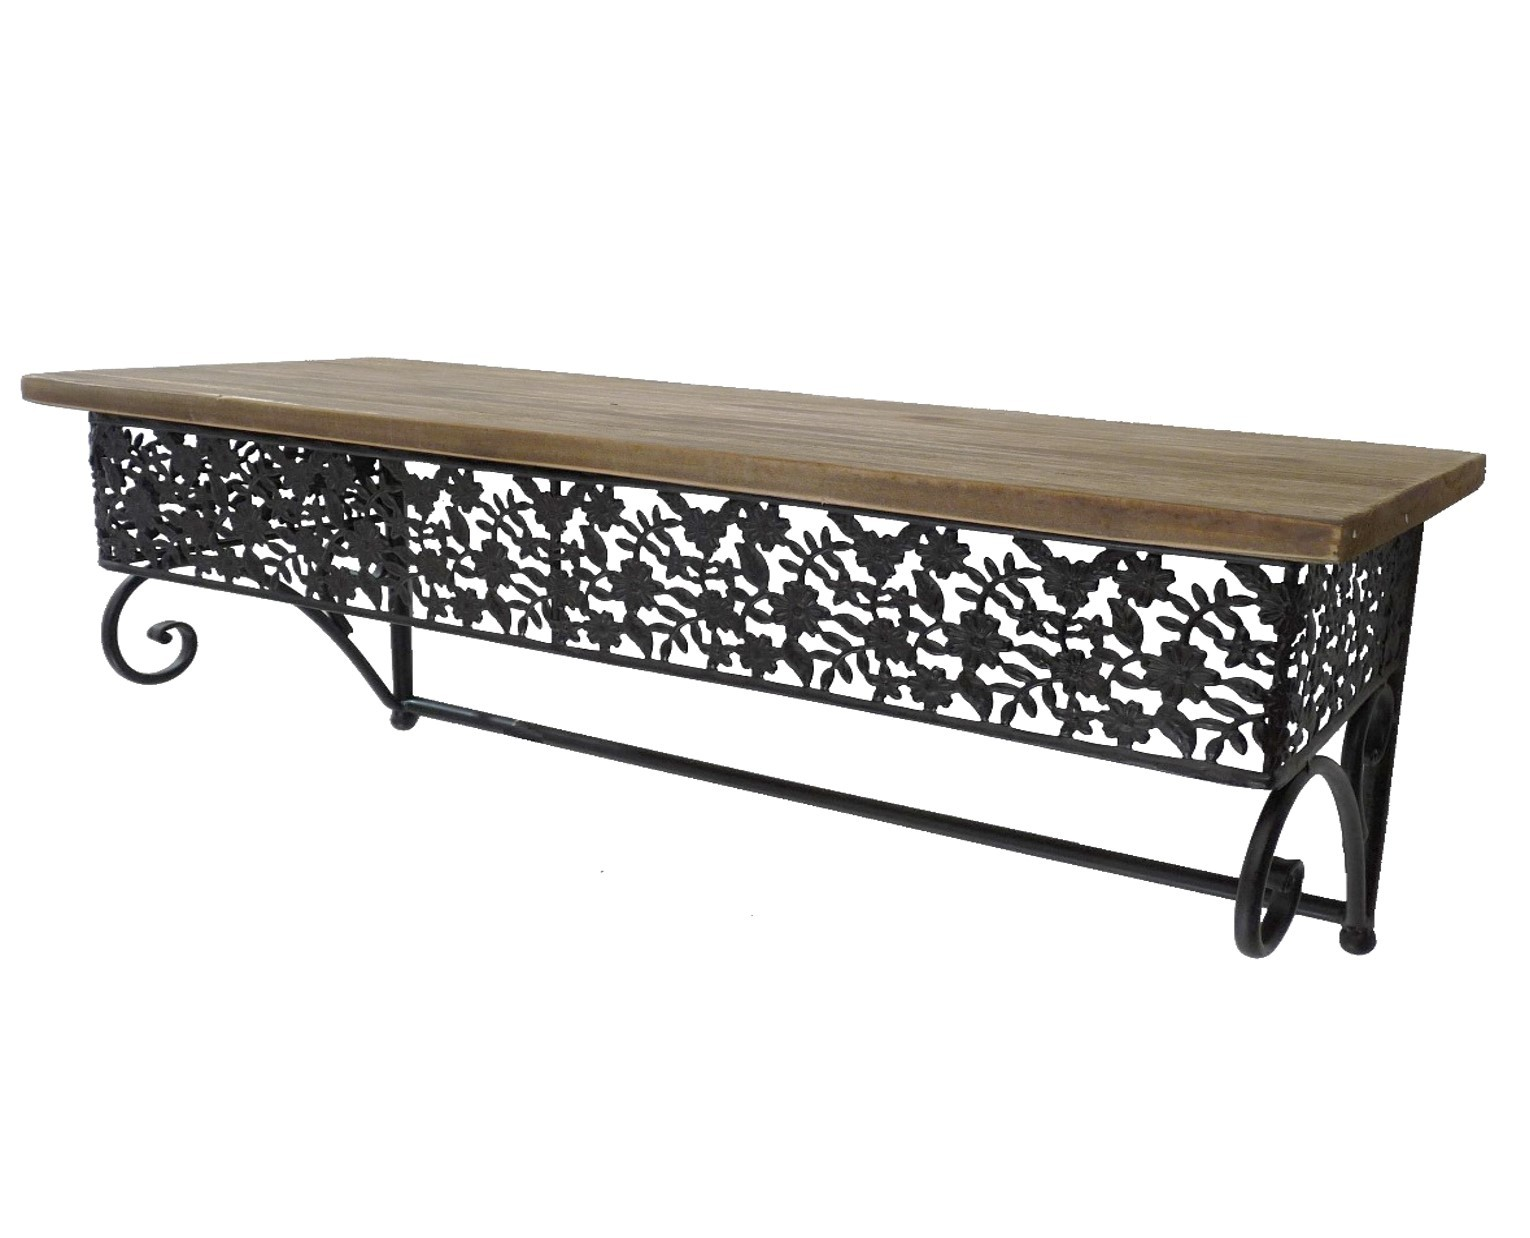 Support etagere fer forge fashion designs - Console murale fer forge ...